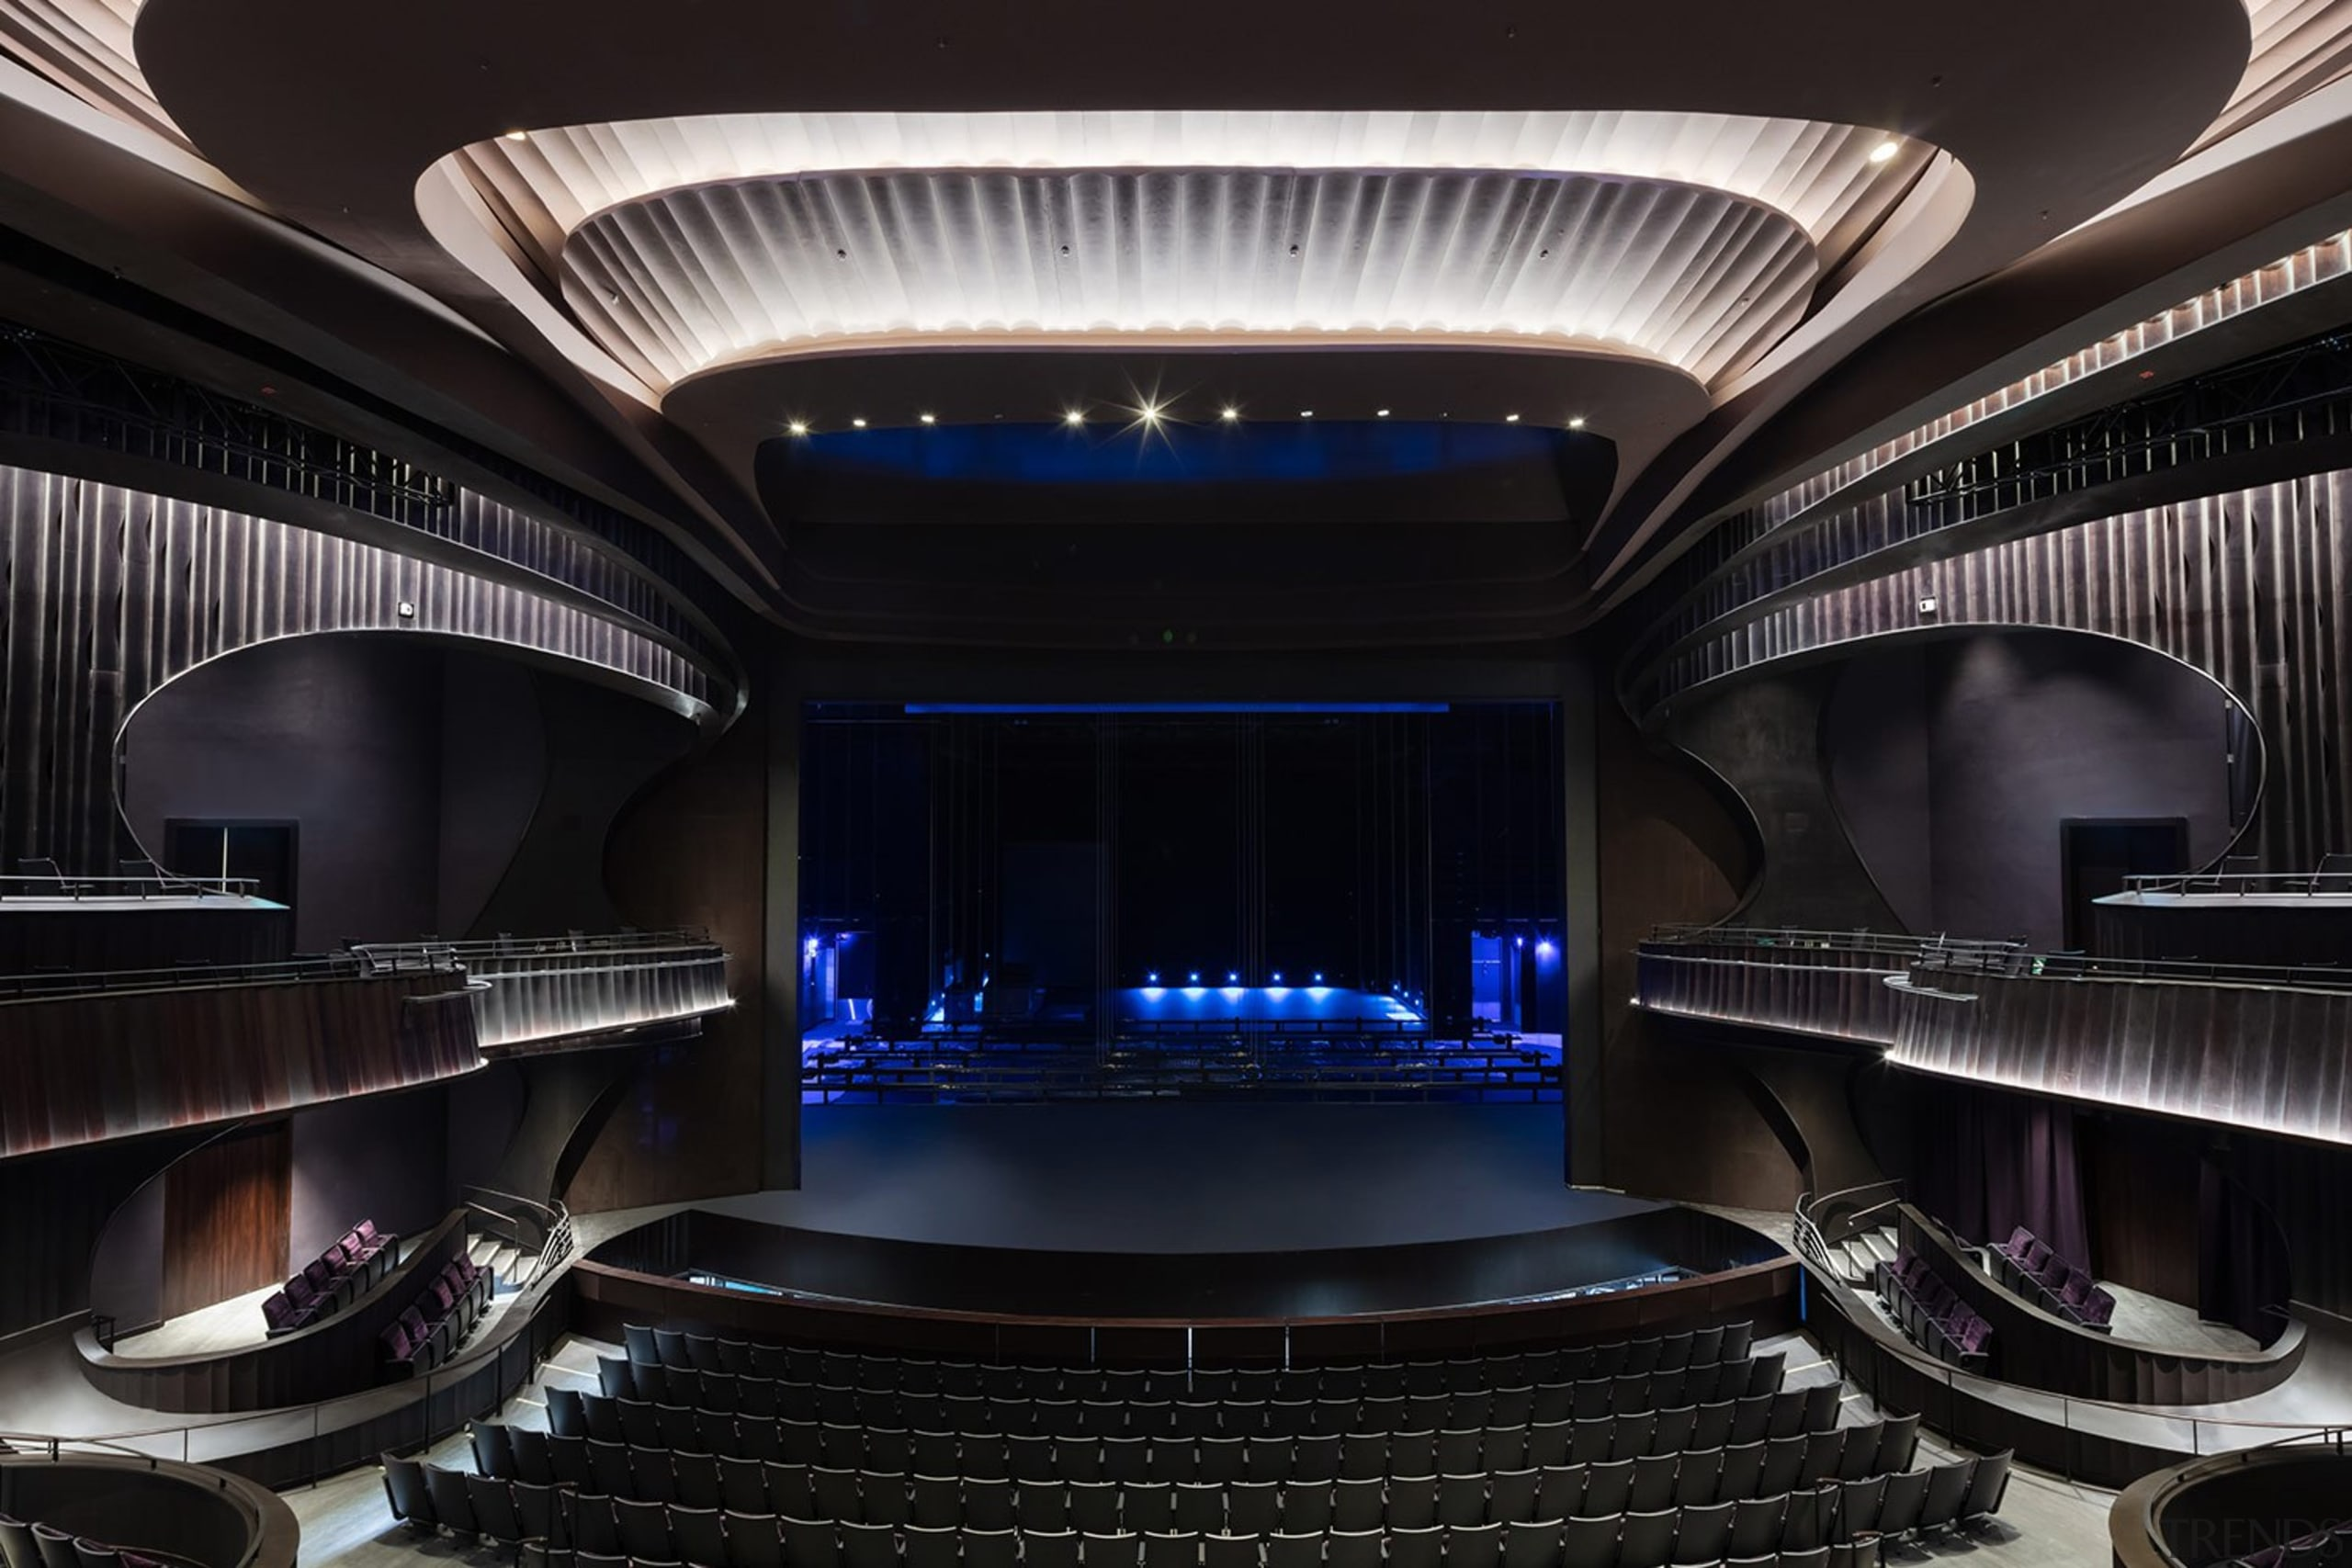 Formed from structural steel, the Grand Theatre is architecture, auditorium, building, ceiling, interior design, performing arts center, photography, room, sky, stage, black